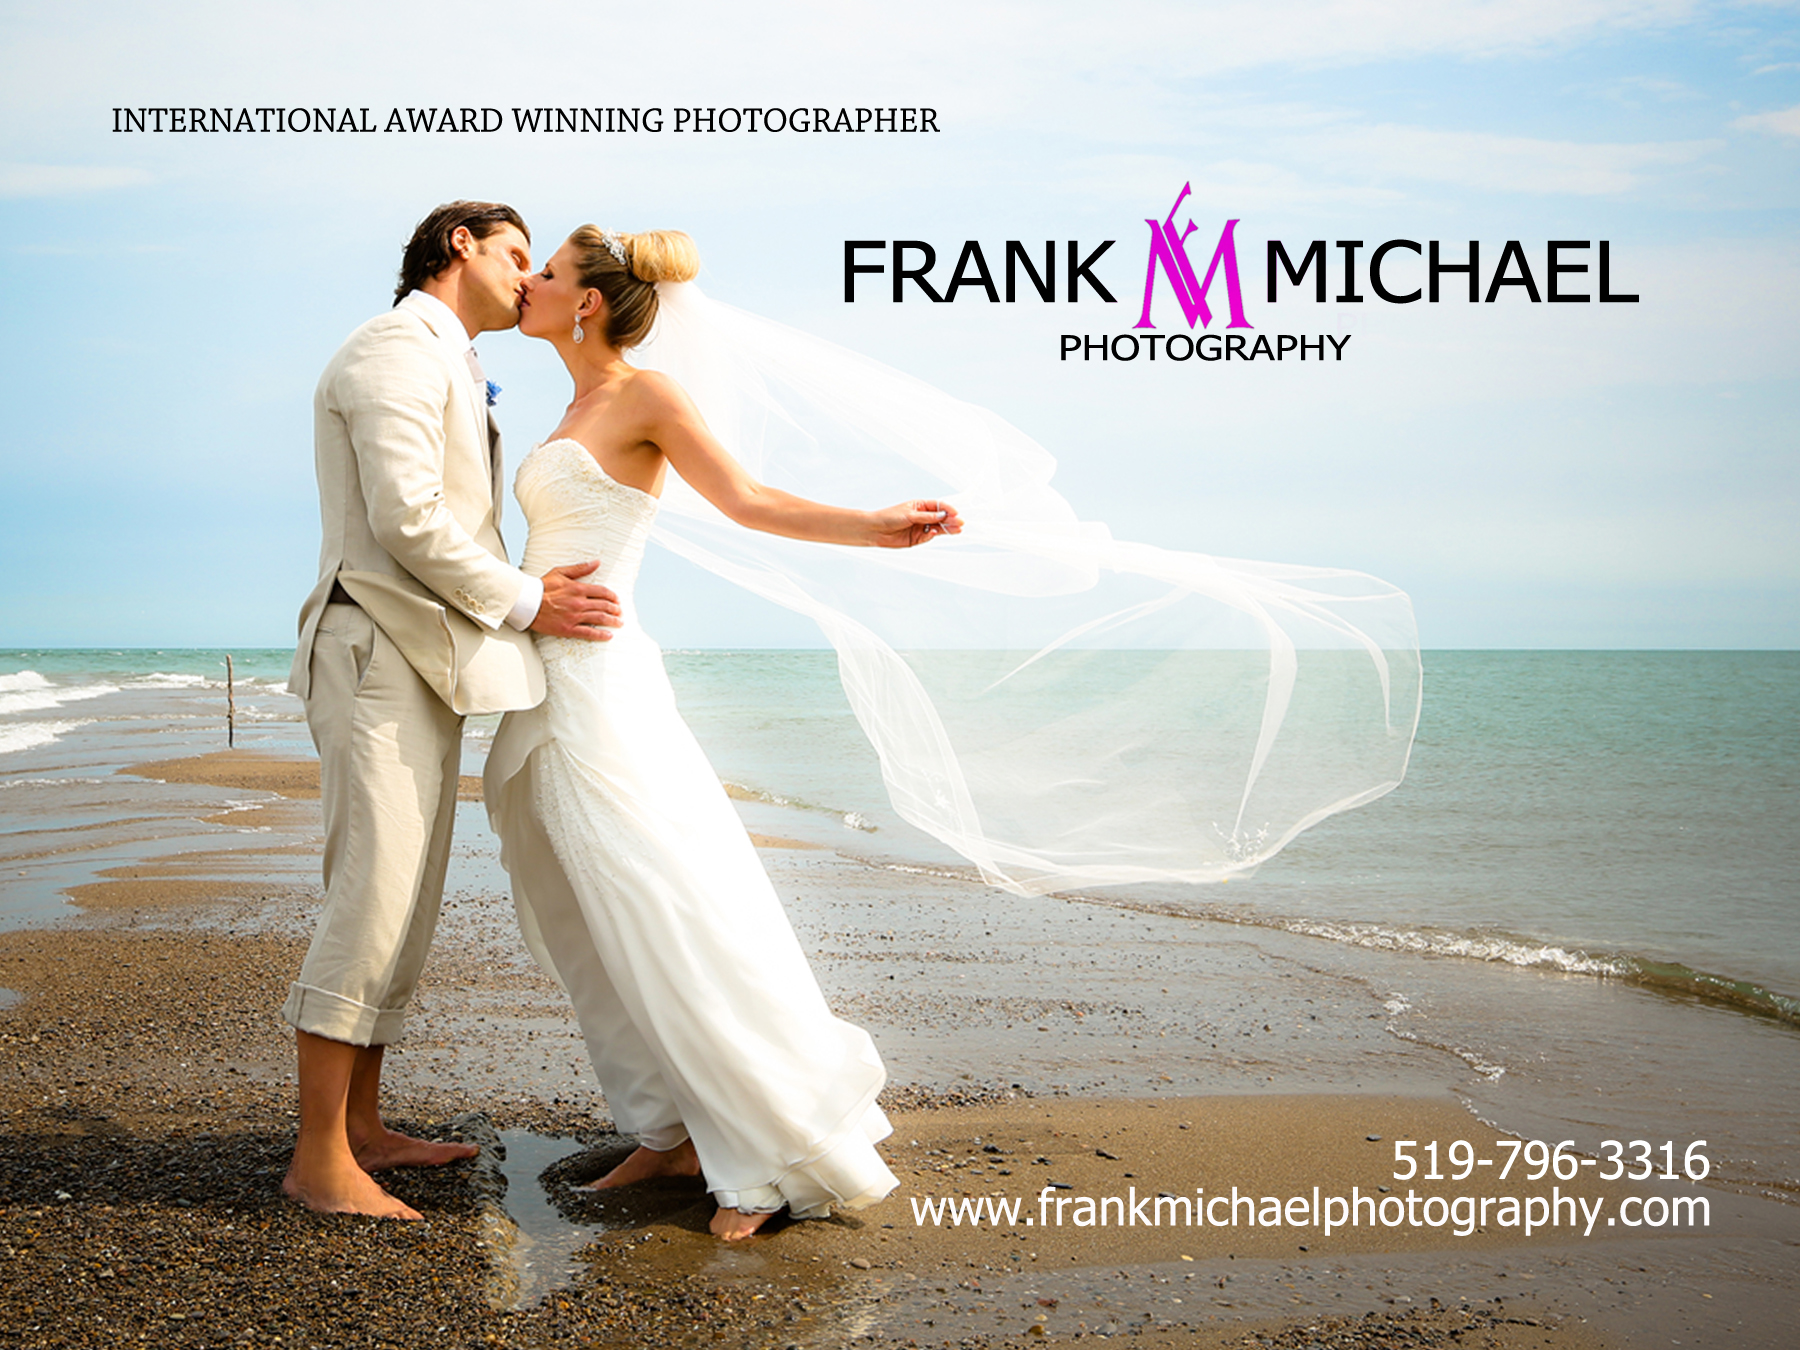 International Award Winning Photographer